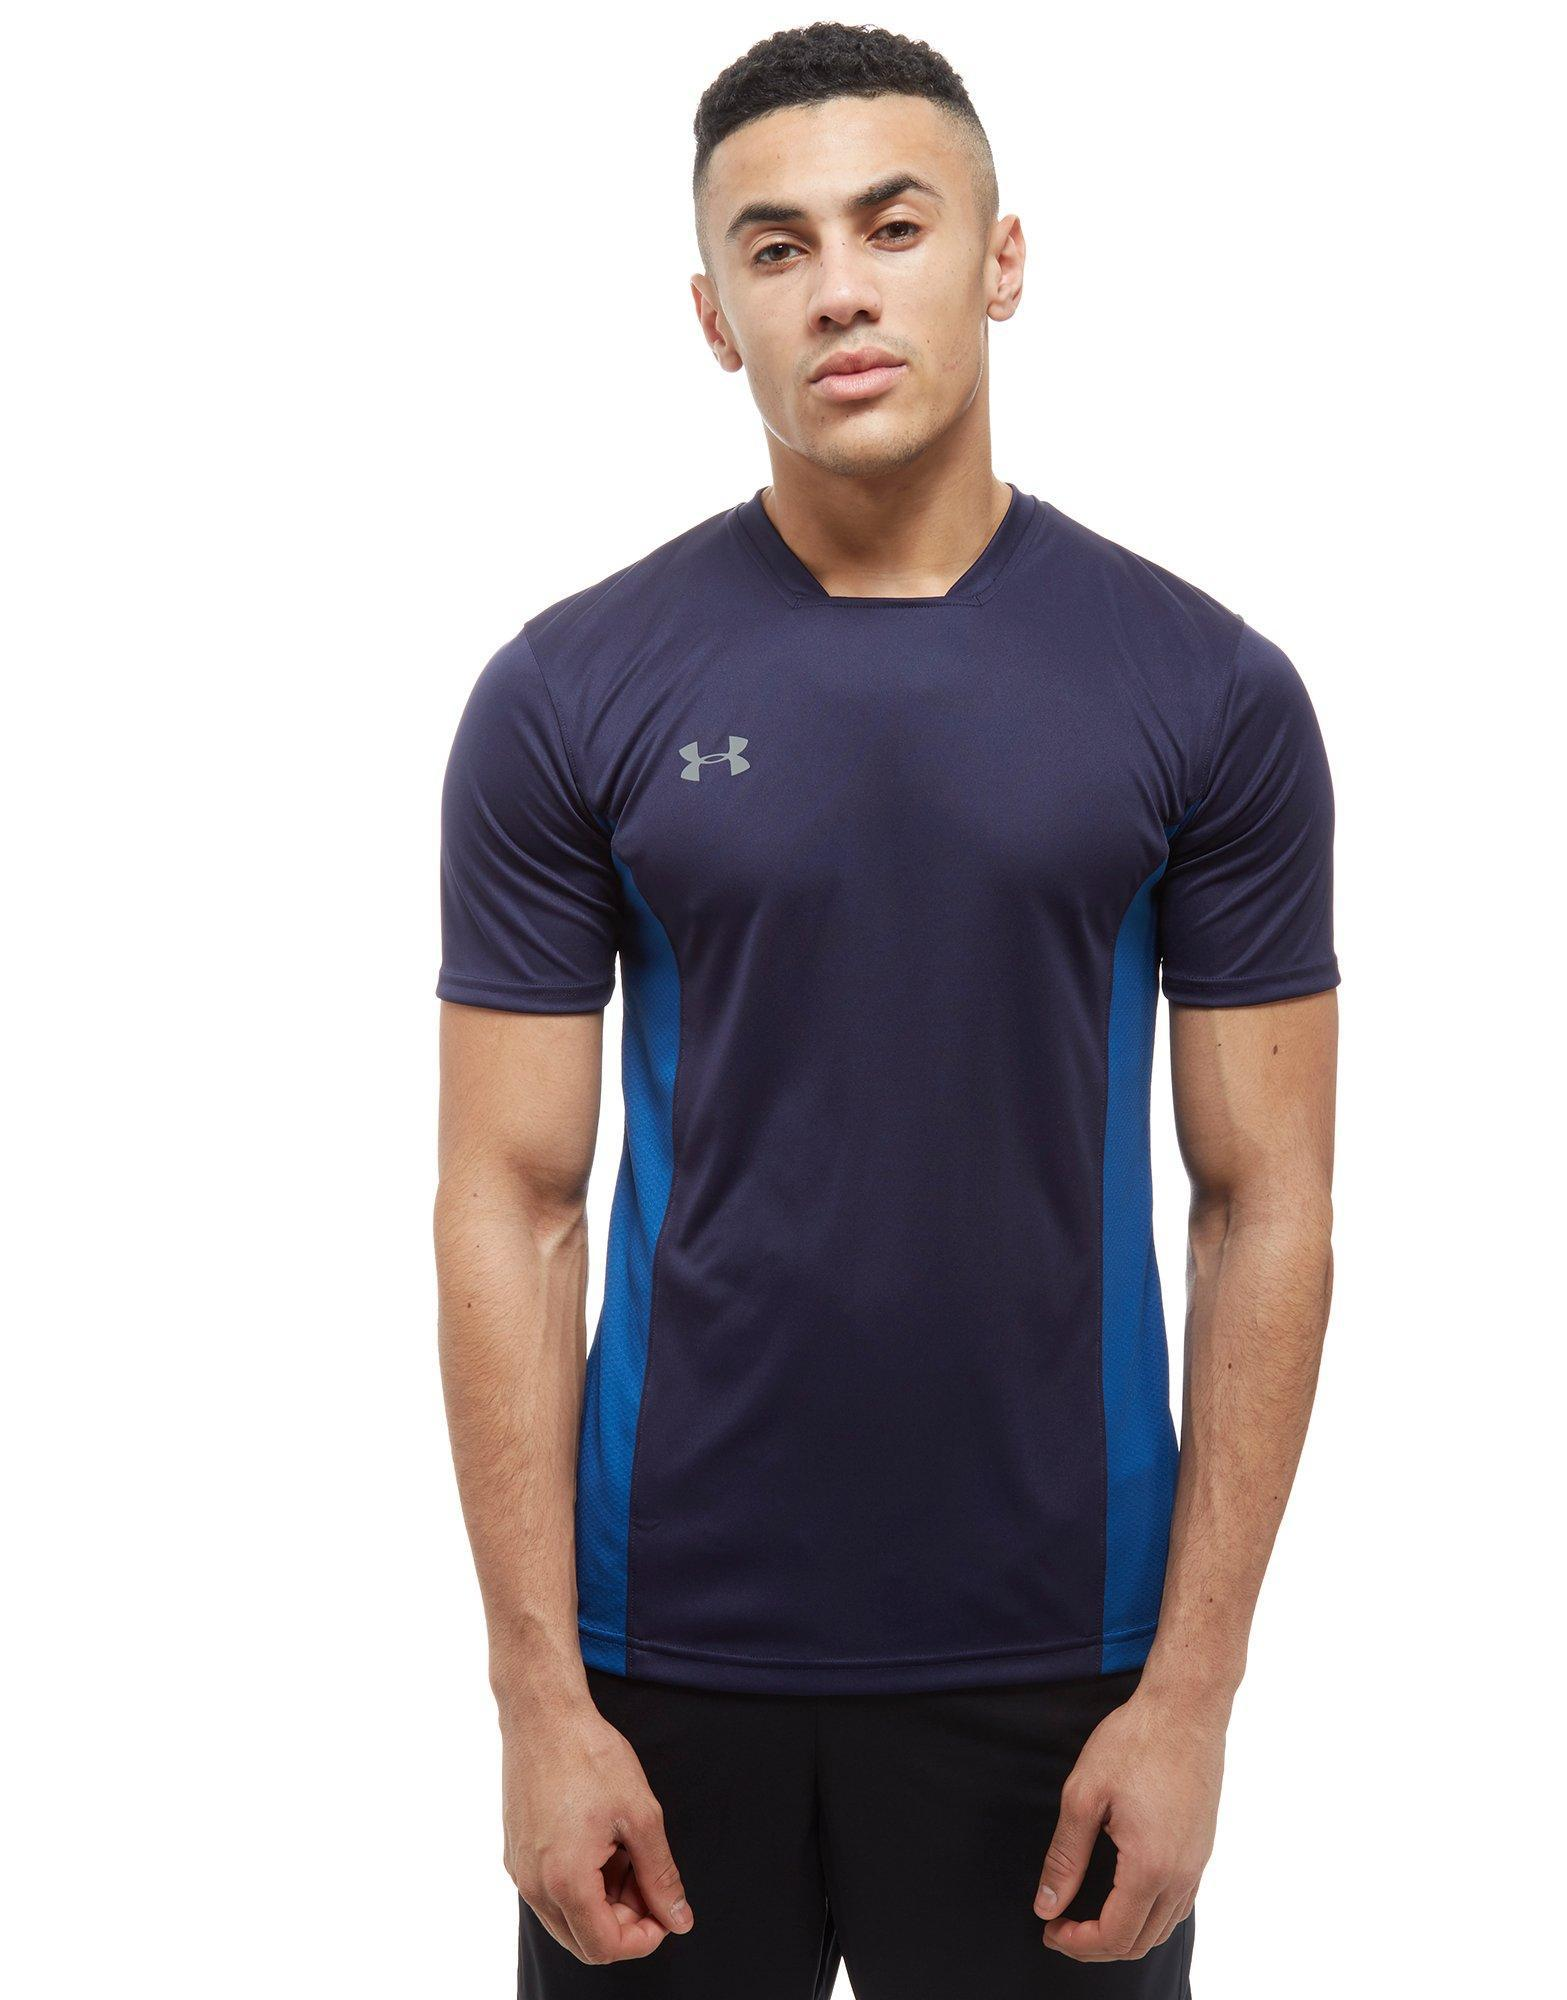 8a10f26d509 Jd Sports Mens Under Armour T Shirts - Image Of Shirt